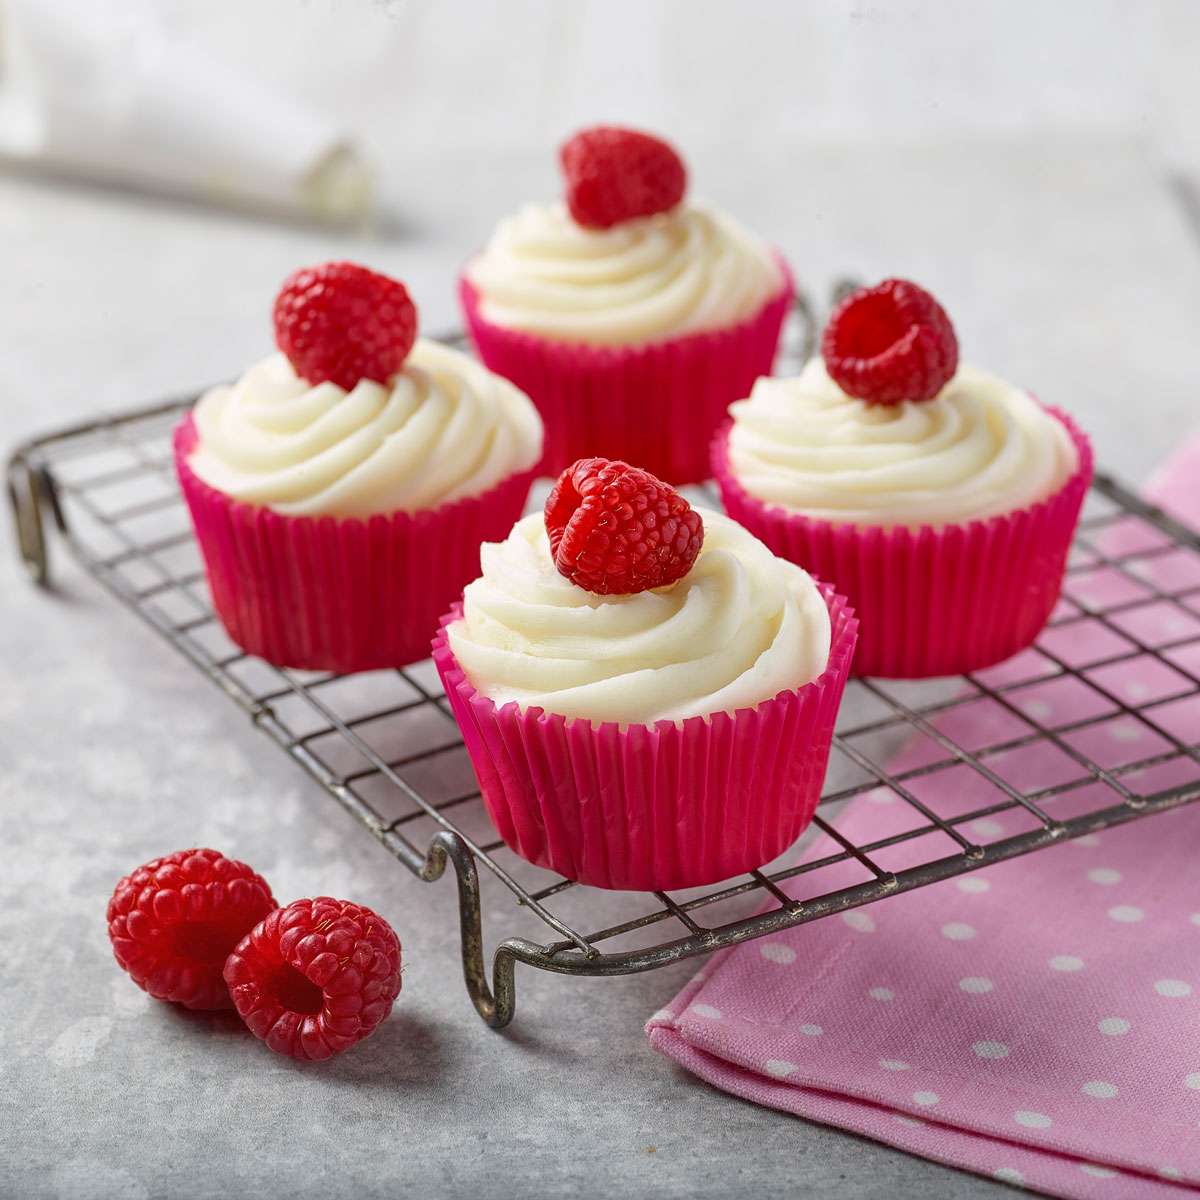 Win a Year's Supply of Cake Decorating Goodies with Renshaw's